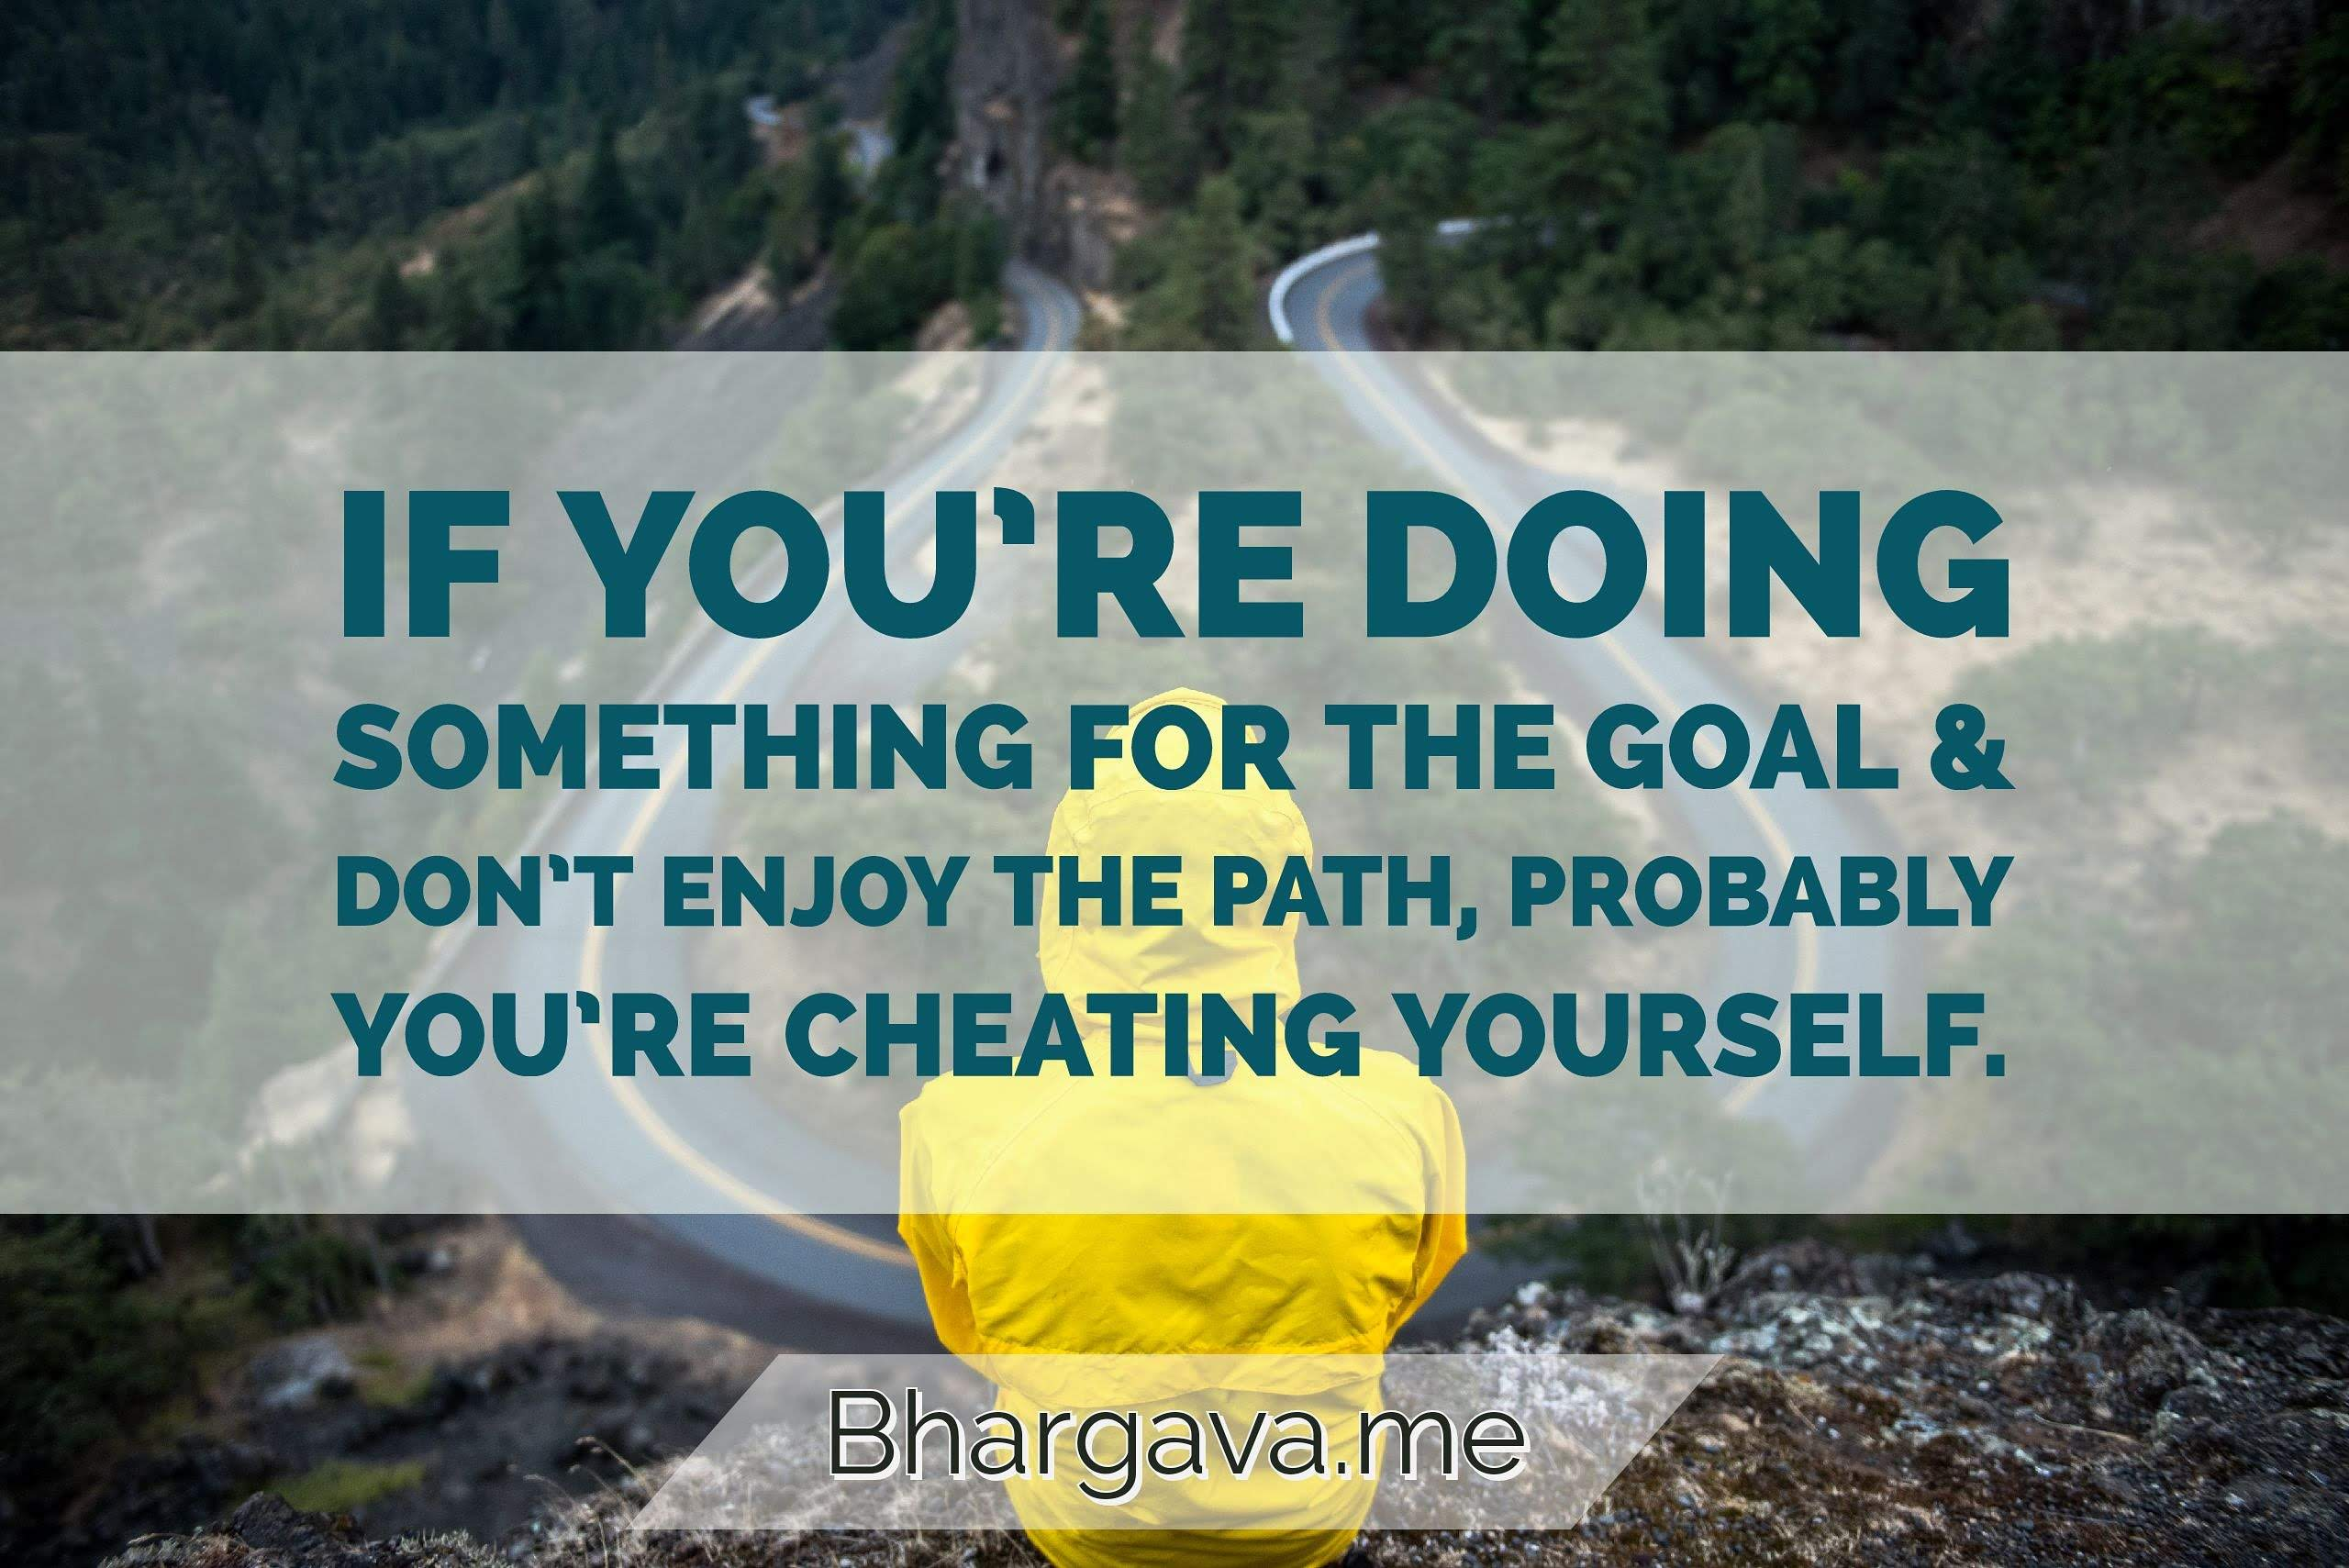 If you are doing something for the goal and not enjoying the path probably you are cheating yourself